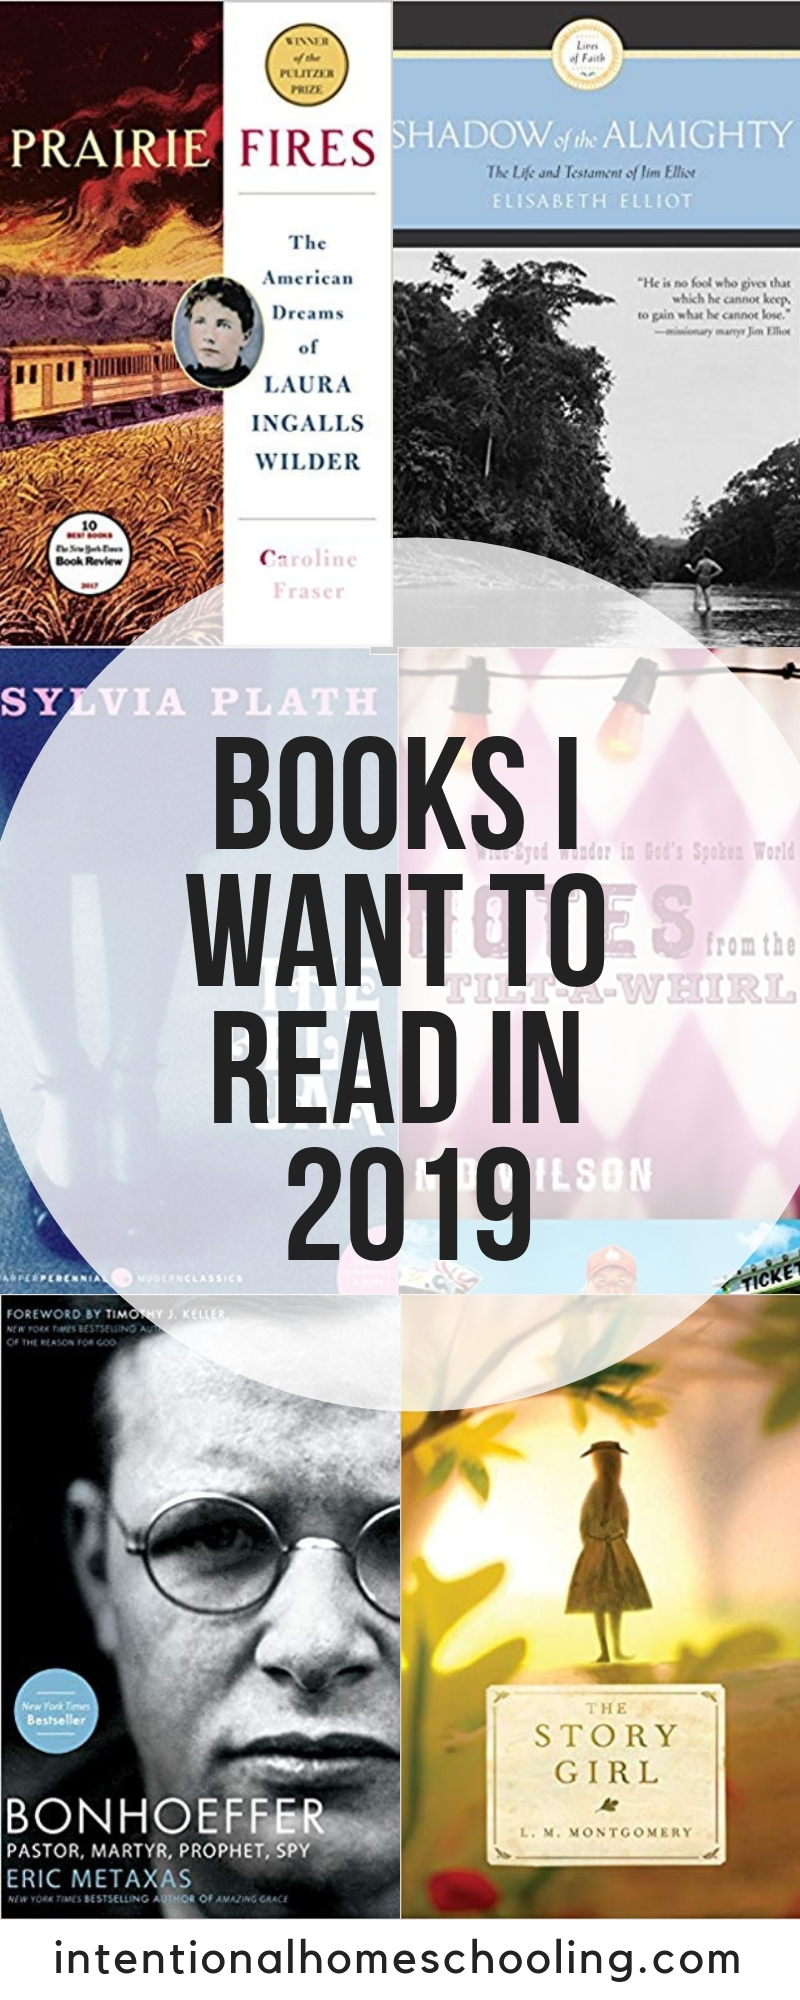 Books I want to read in 2019 - non-fiction, biographies, fiction and classics.